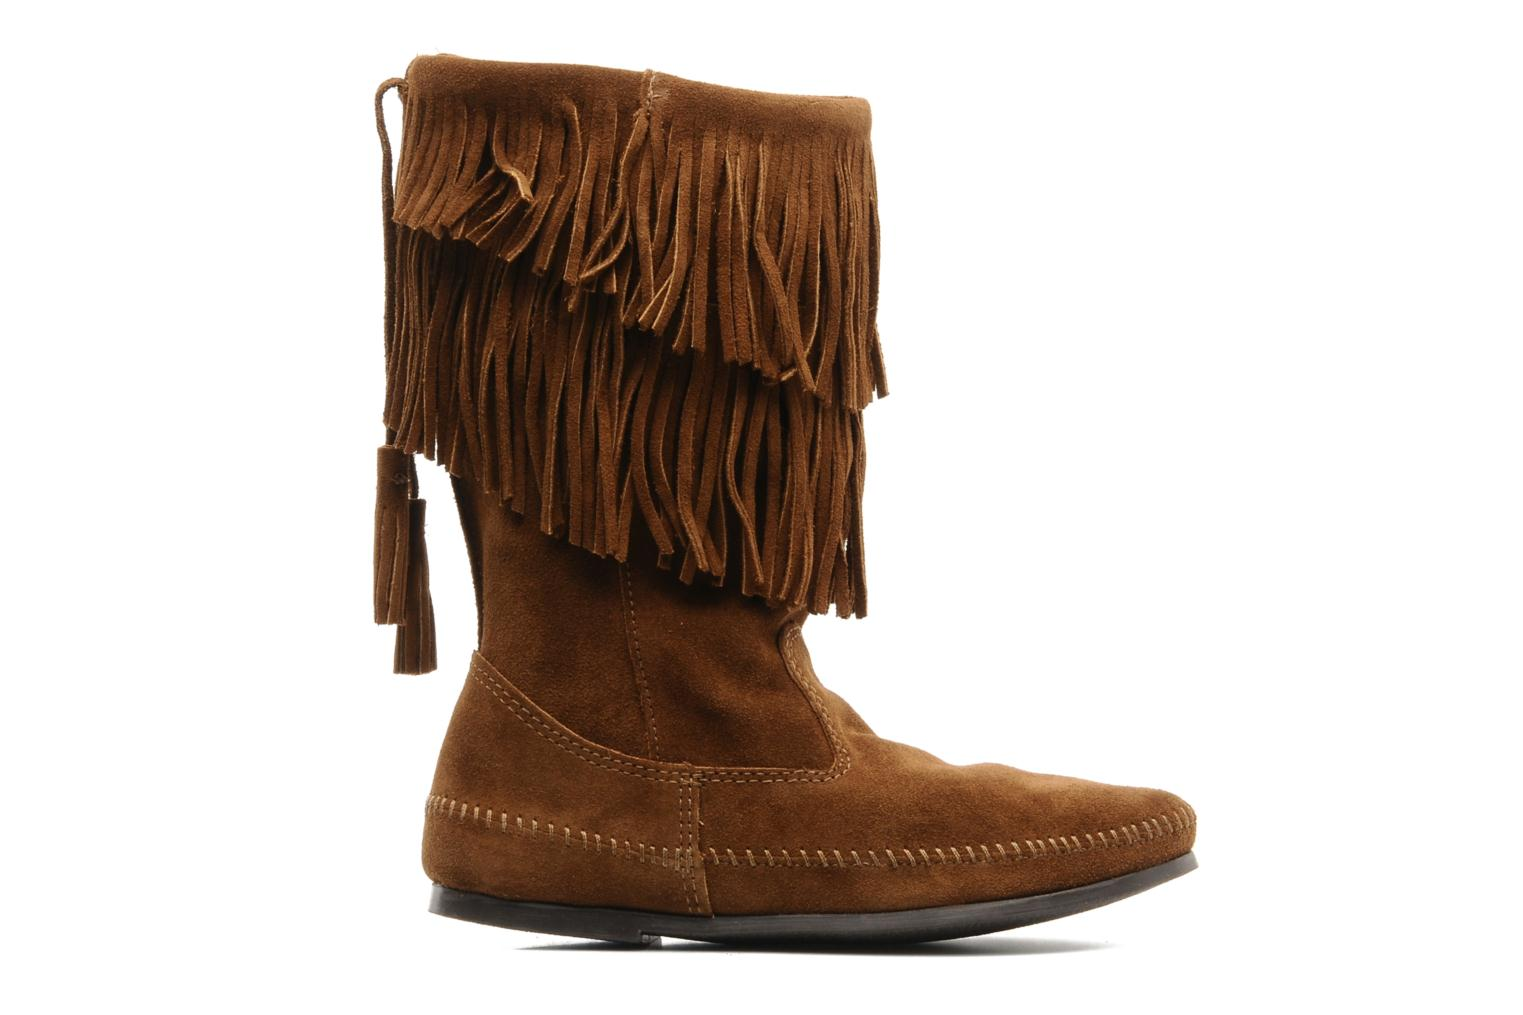 Bottines et boots Minnetonka CALF HI 2LAYER FRINGE Marron vue derrière